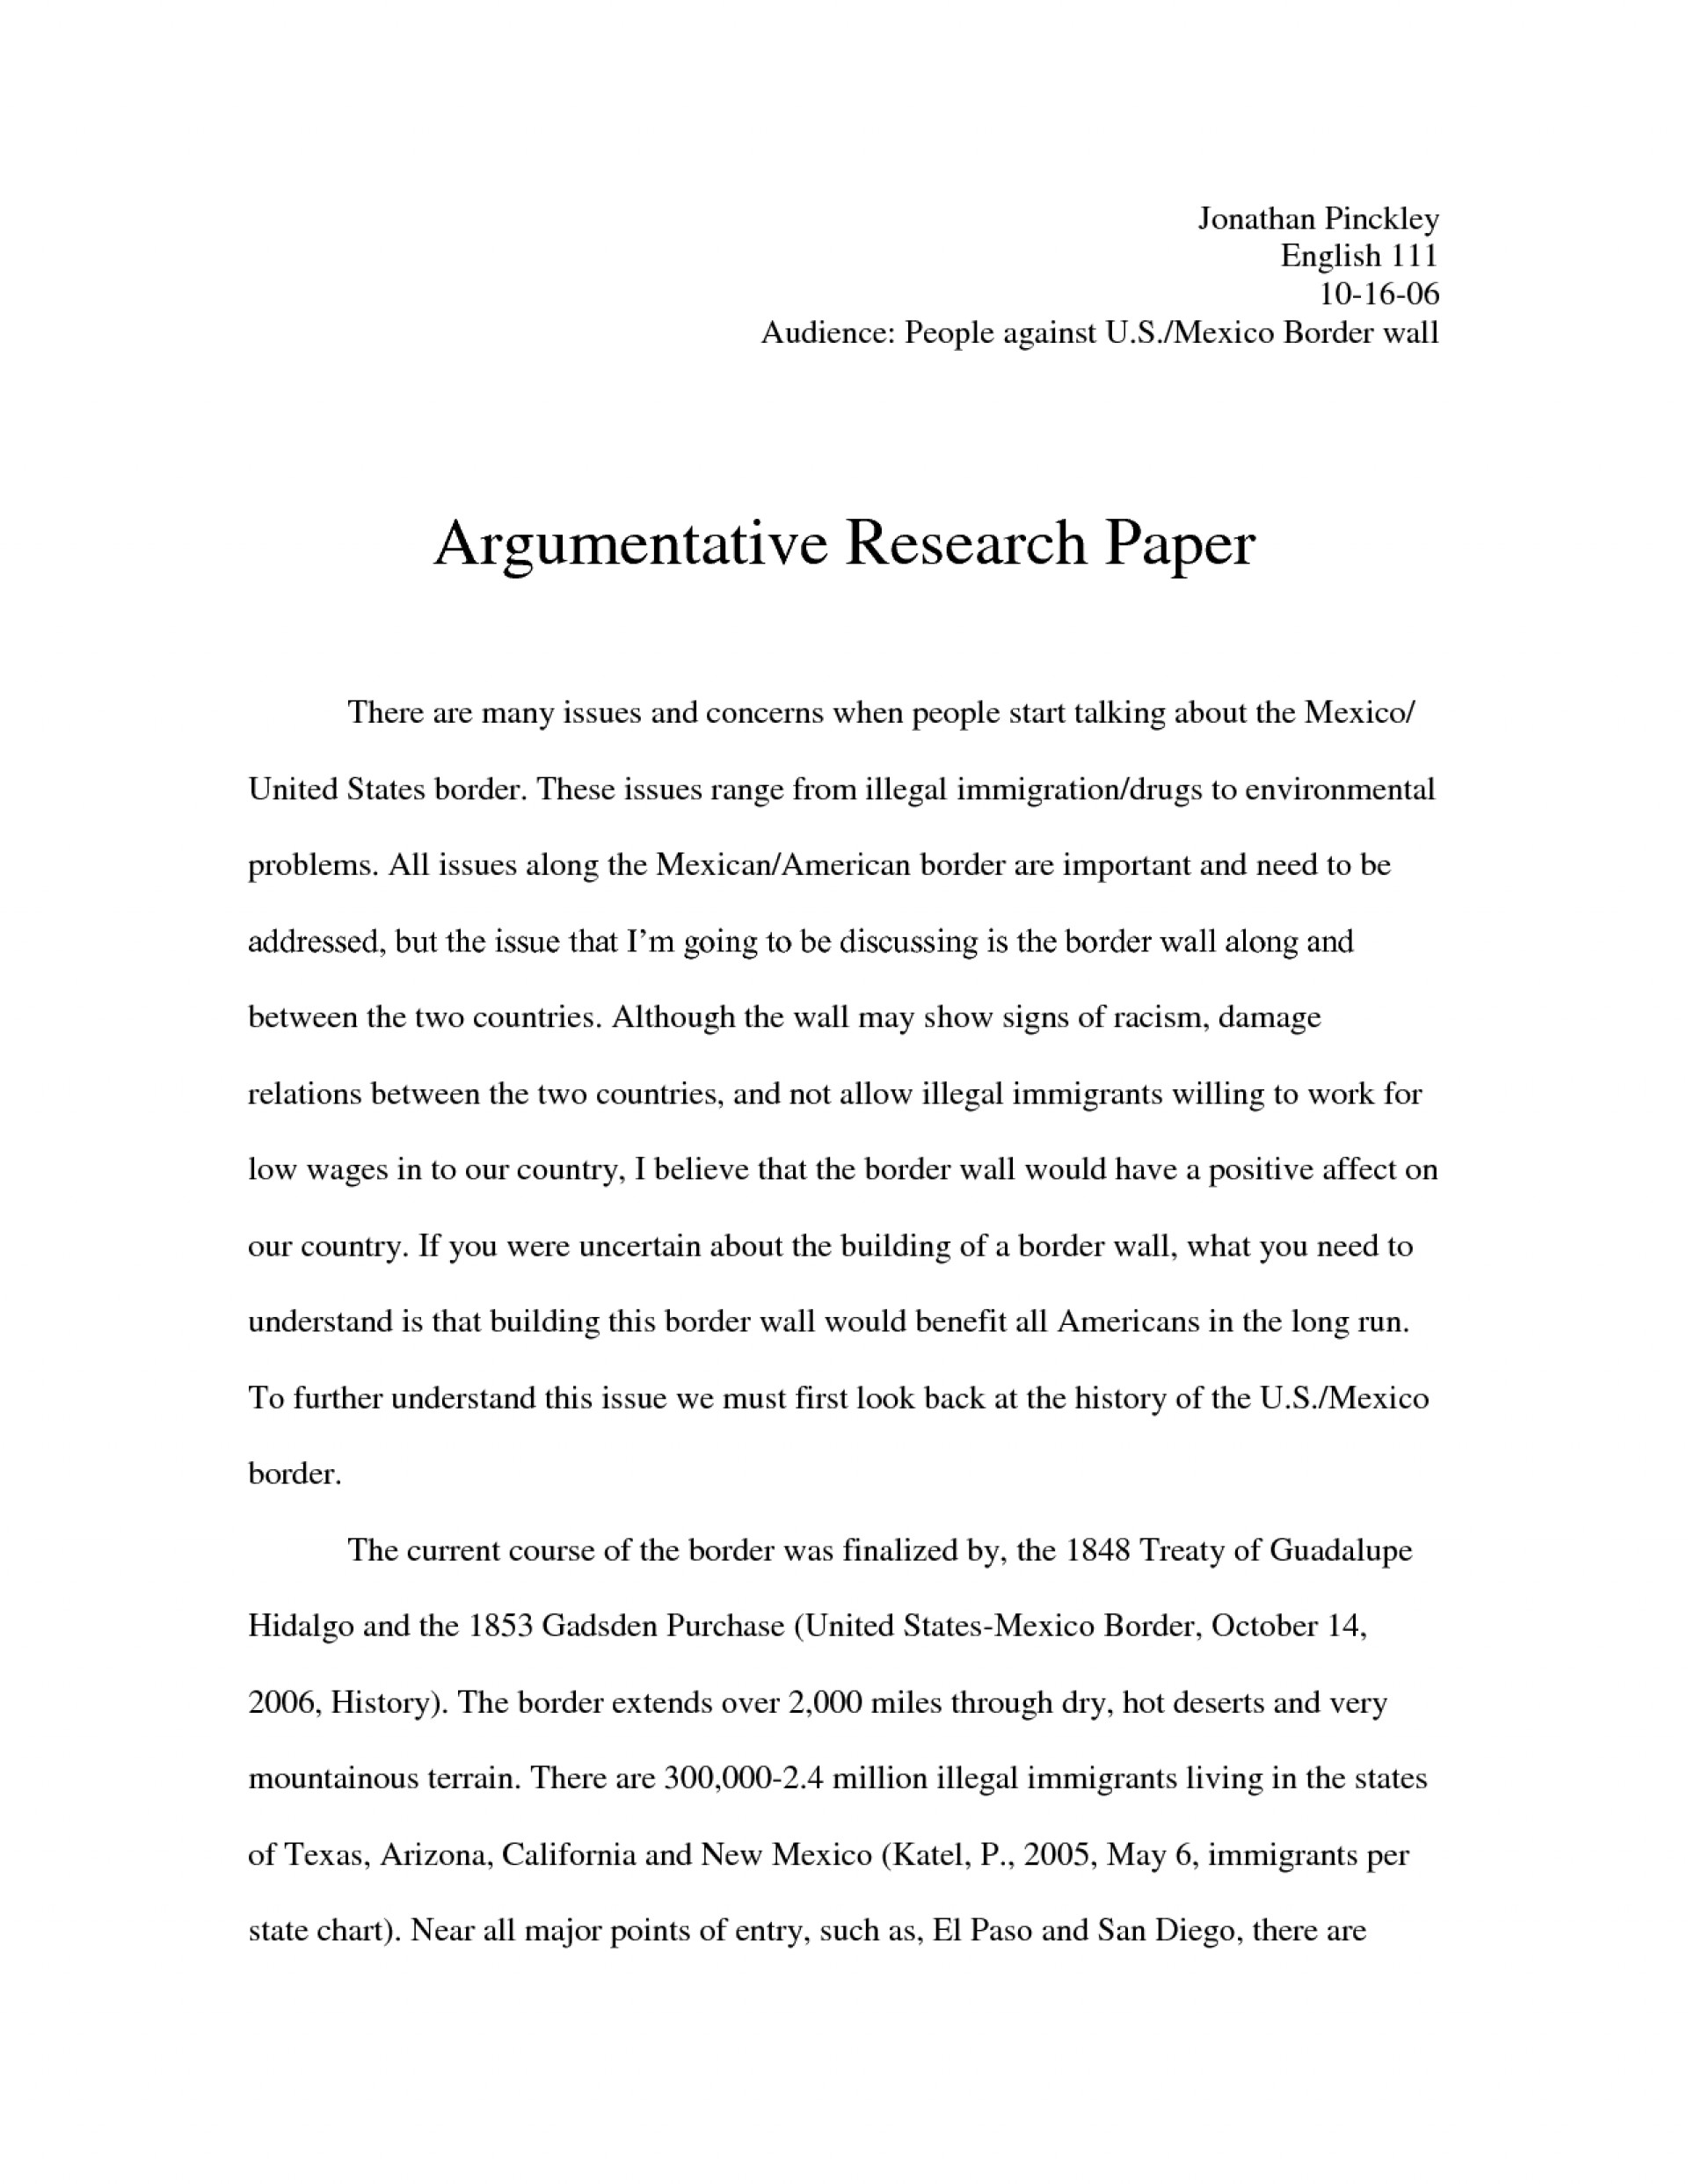 014 Uncategorized Debate20y Argumentative Thesis High School Topics Sentence Starters Outline Worksheet Structure20 For Research Rare A Paper Medical Easy Papers Interesting 1920